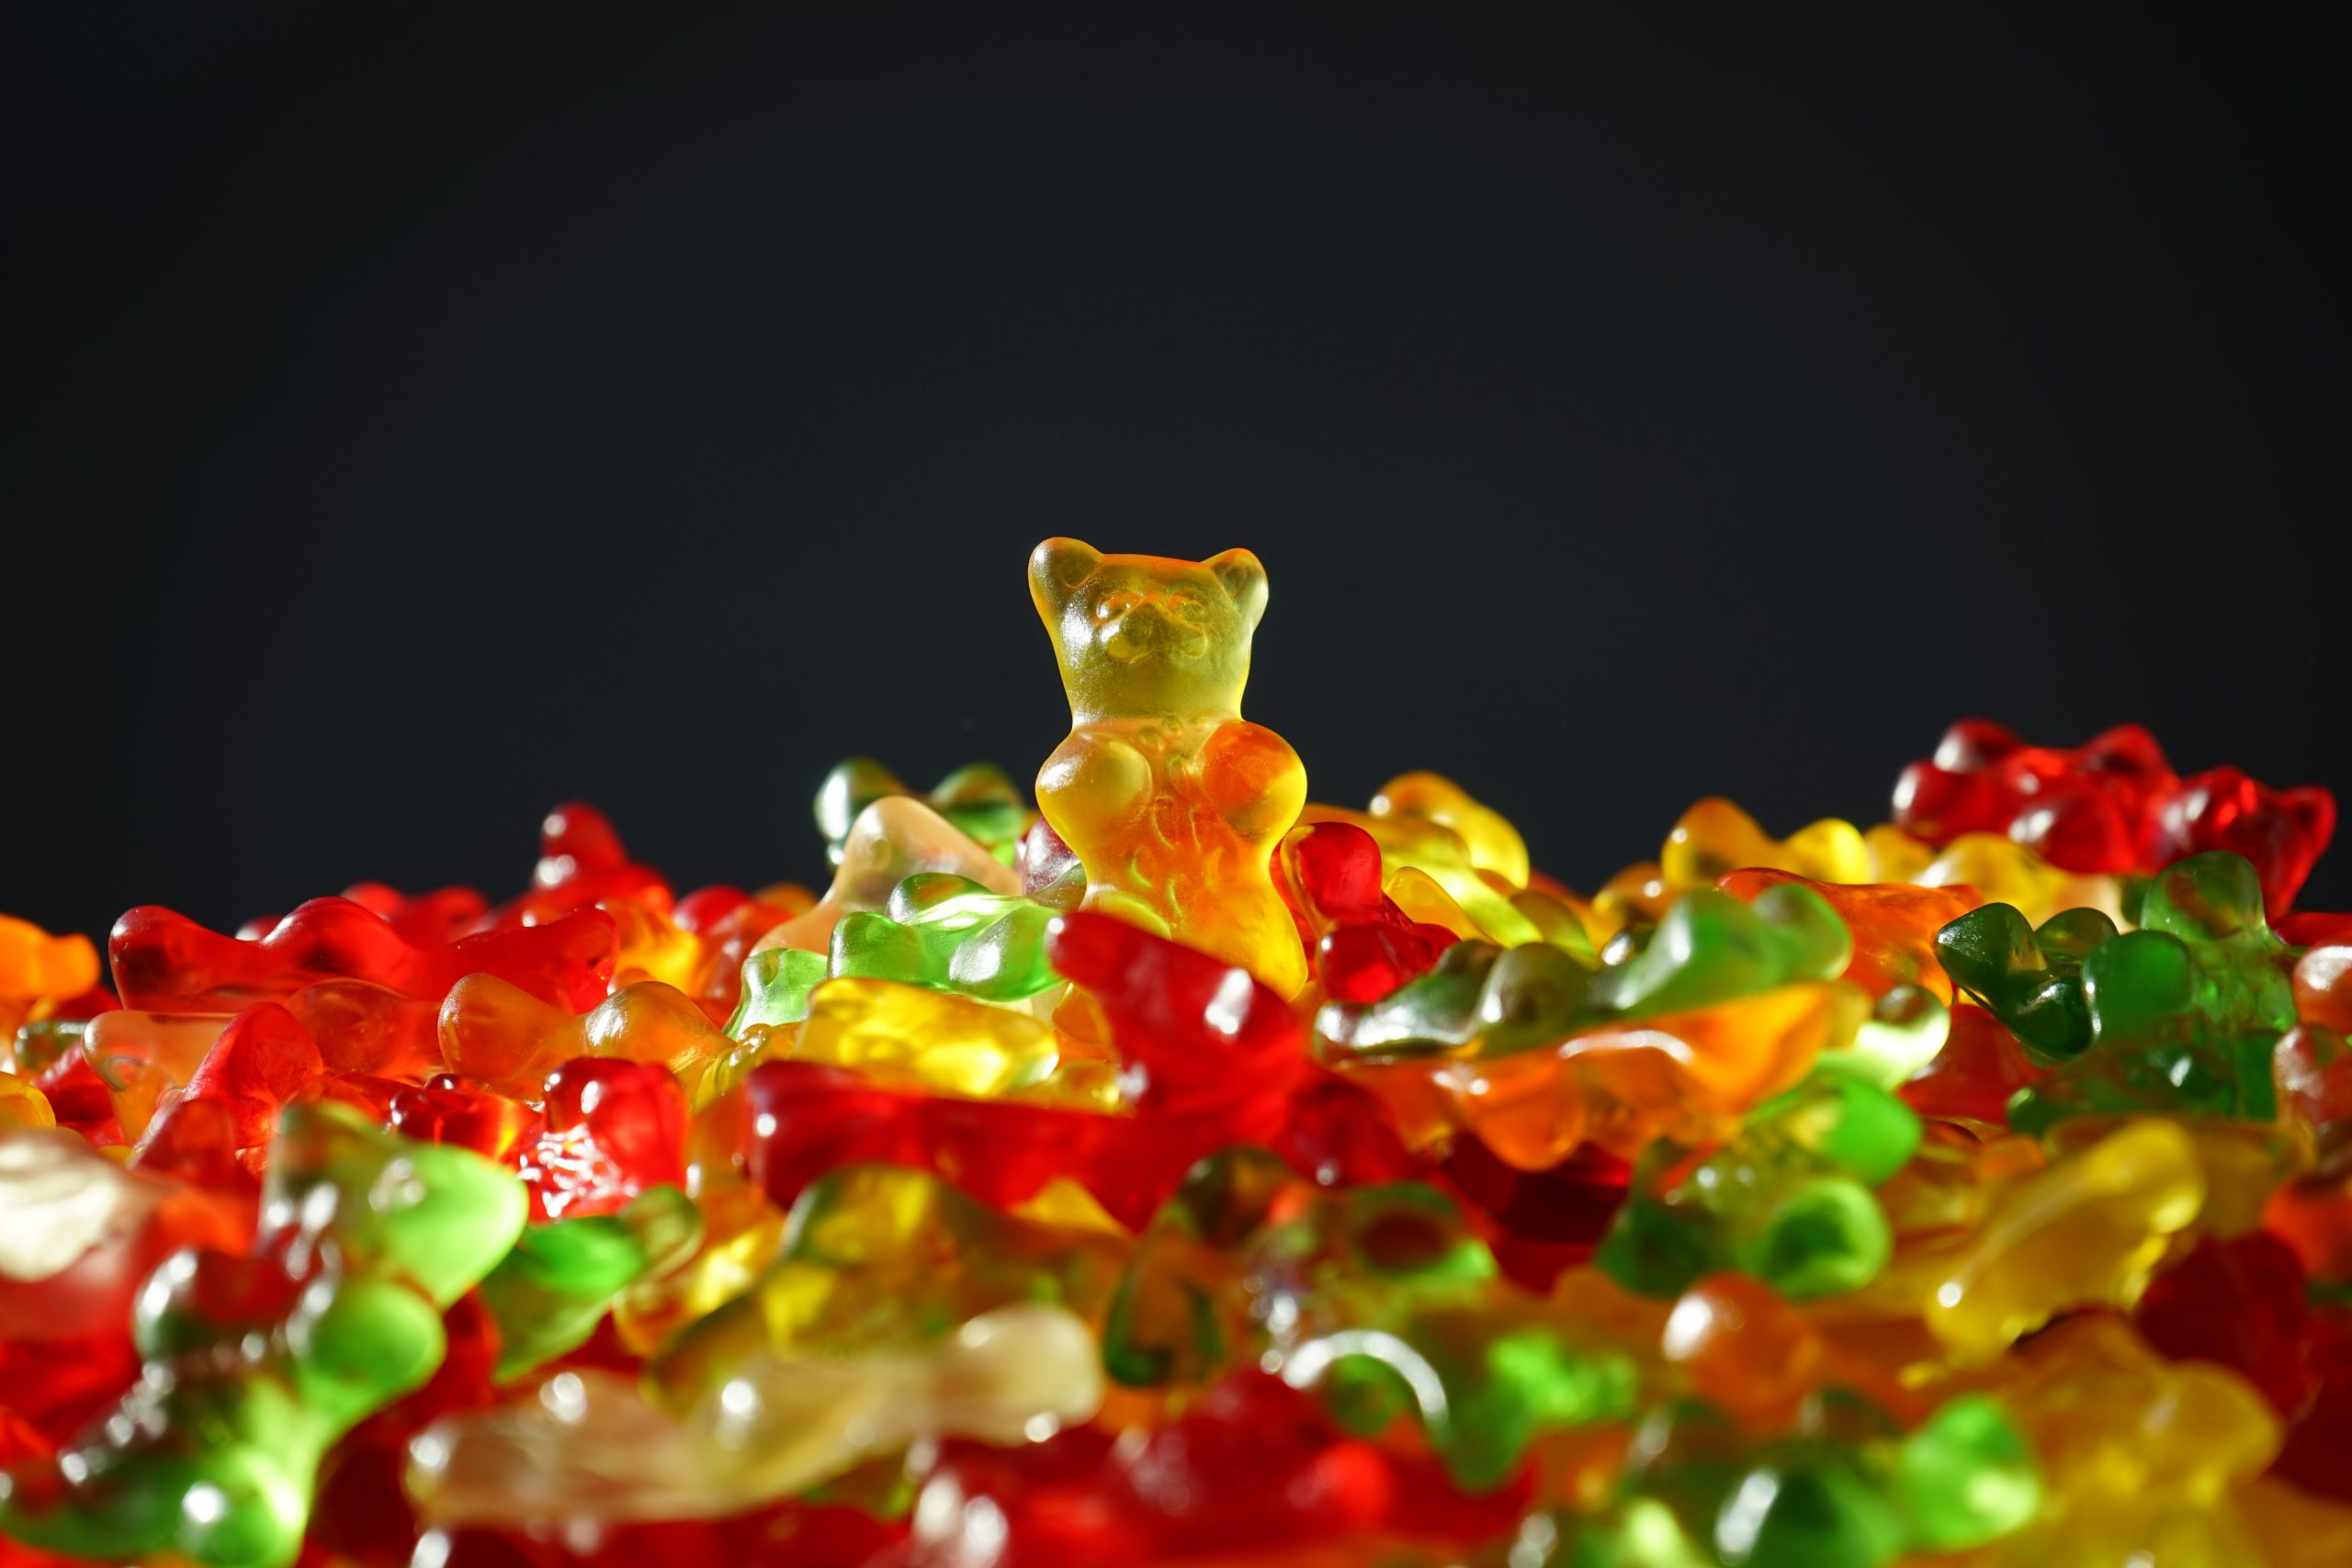 Gummy bears as an example of artificial sweeteners.